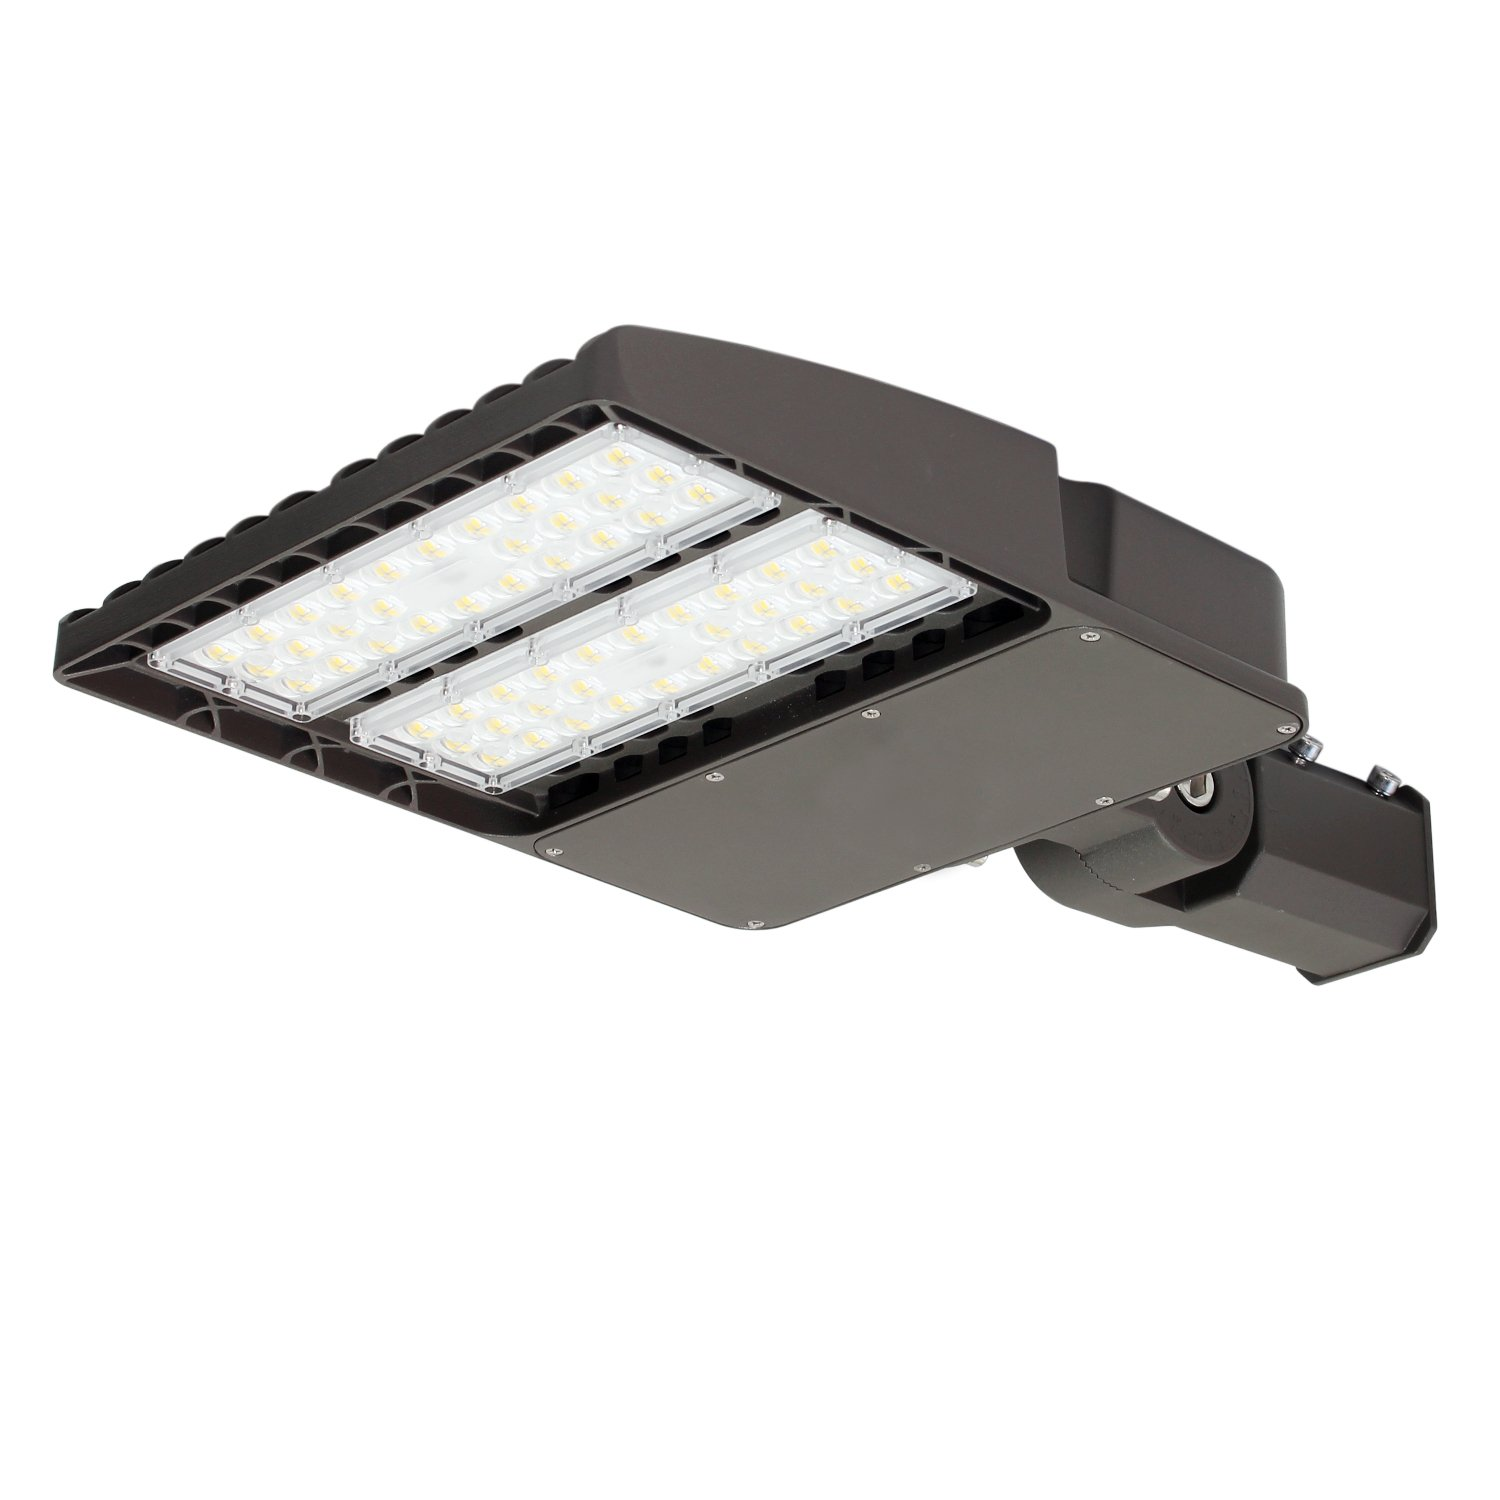 KCCCT led shoebox outdoor parking lot pole light commerical security area lighting fixture 5700k 130LM/W Slipfitter UL & DLC Listed weatherpoof (150w)